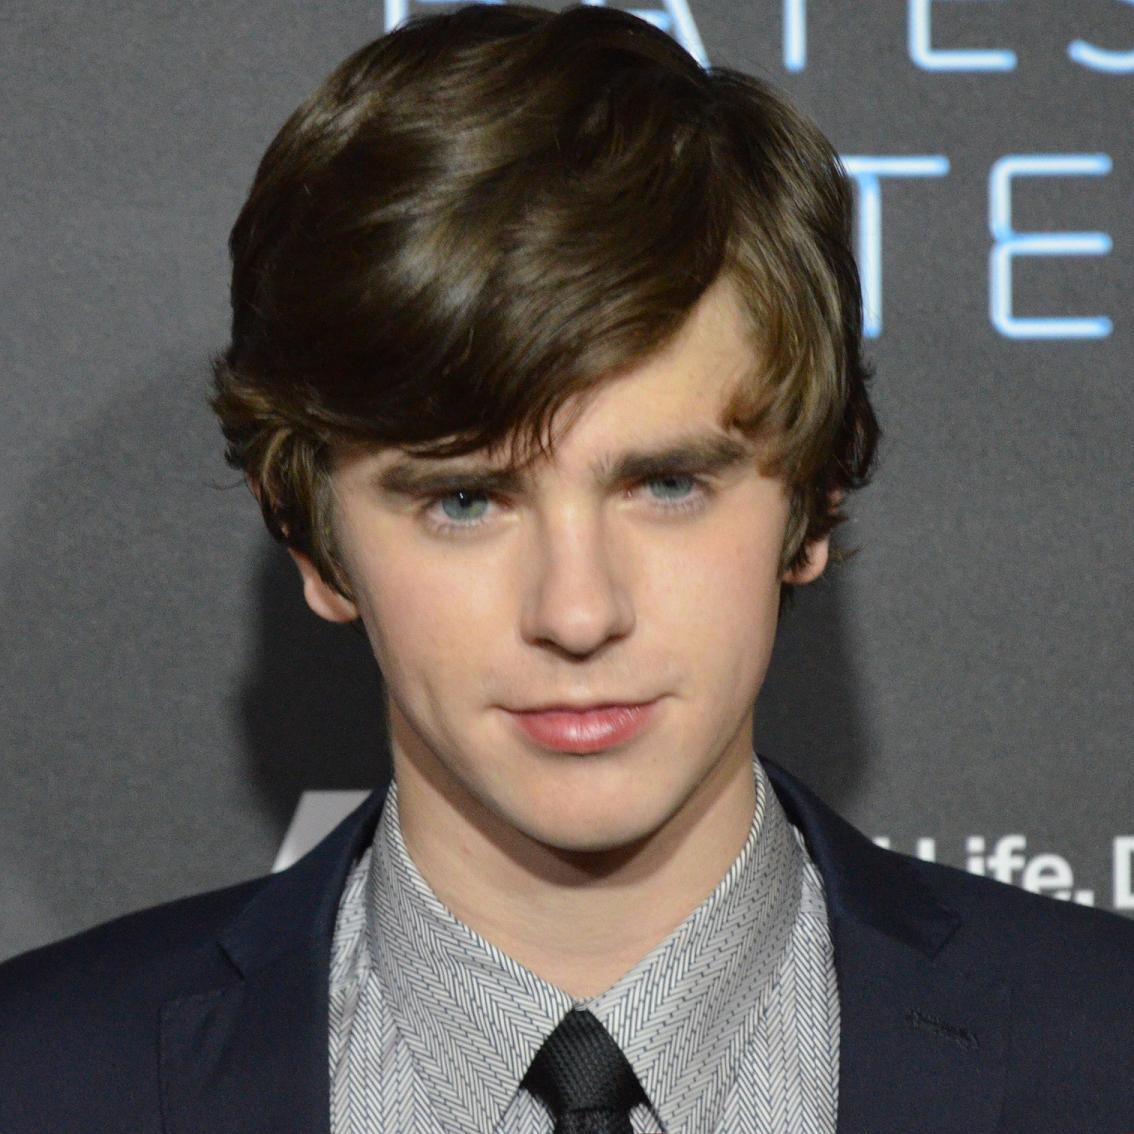 Freddie Highmore Bio, Net Worth, Facts